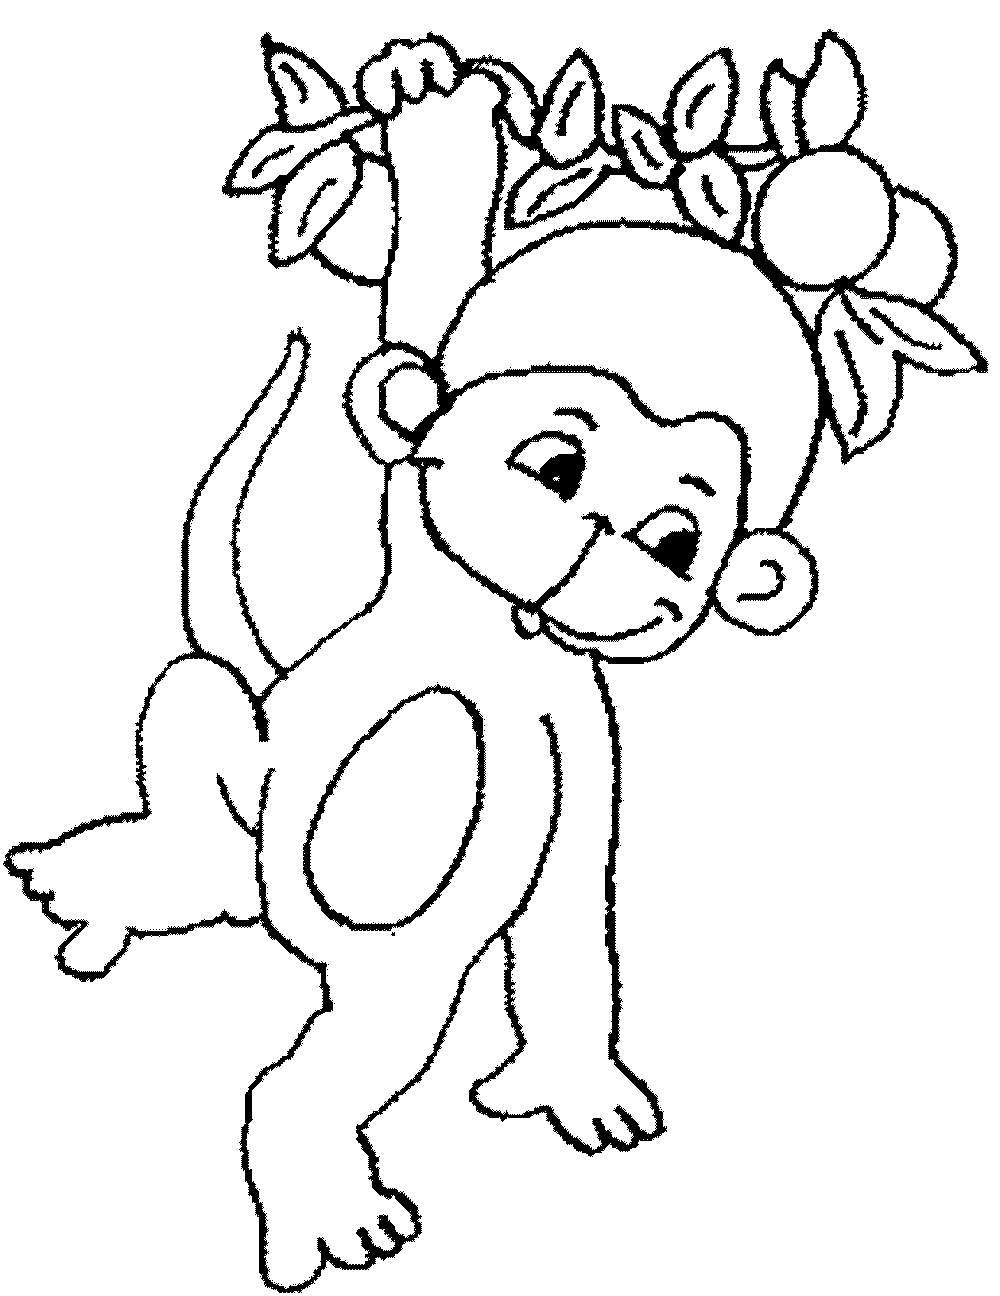 shop related products - Monkey Coloring Page